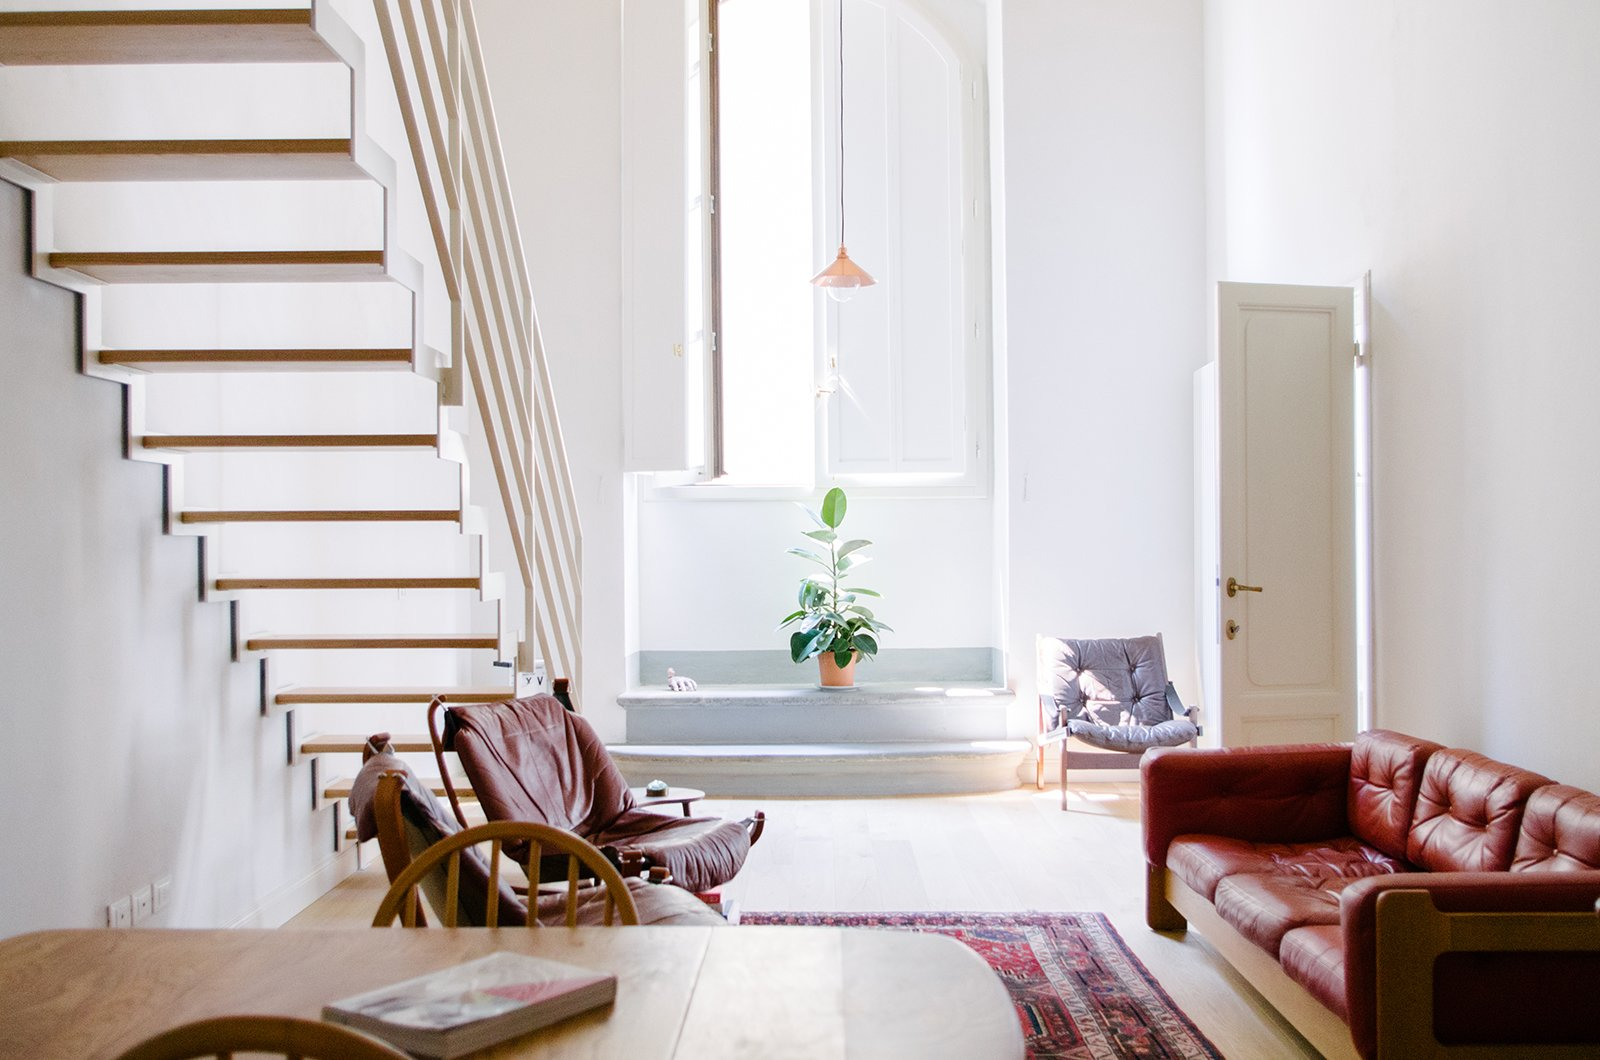 Staircase, Wood Tread, and Metal Railing Lofted mezzanine floors and bathrooms were added to the apartments. Room #1 is particulary bright and airy.  Best Photos from A 16th-Century Florentine Palazzo Is Transformed Into an Artist Residency